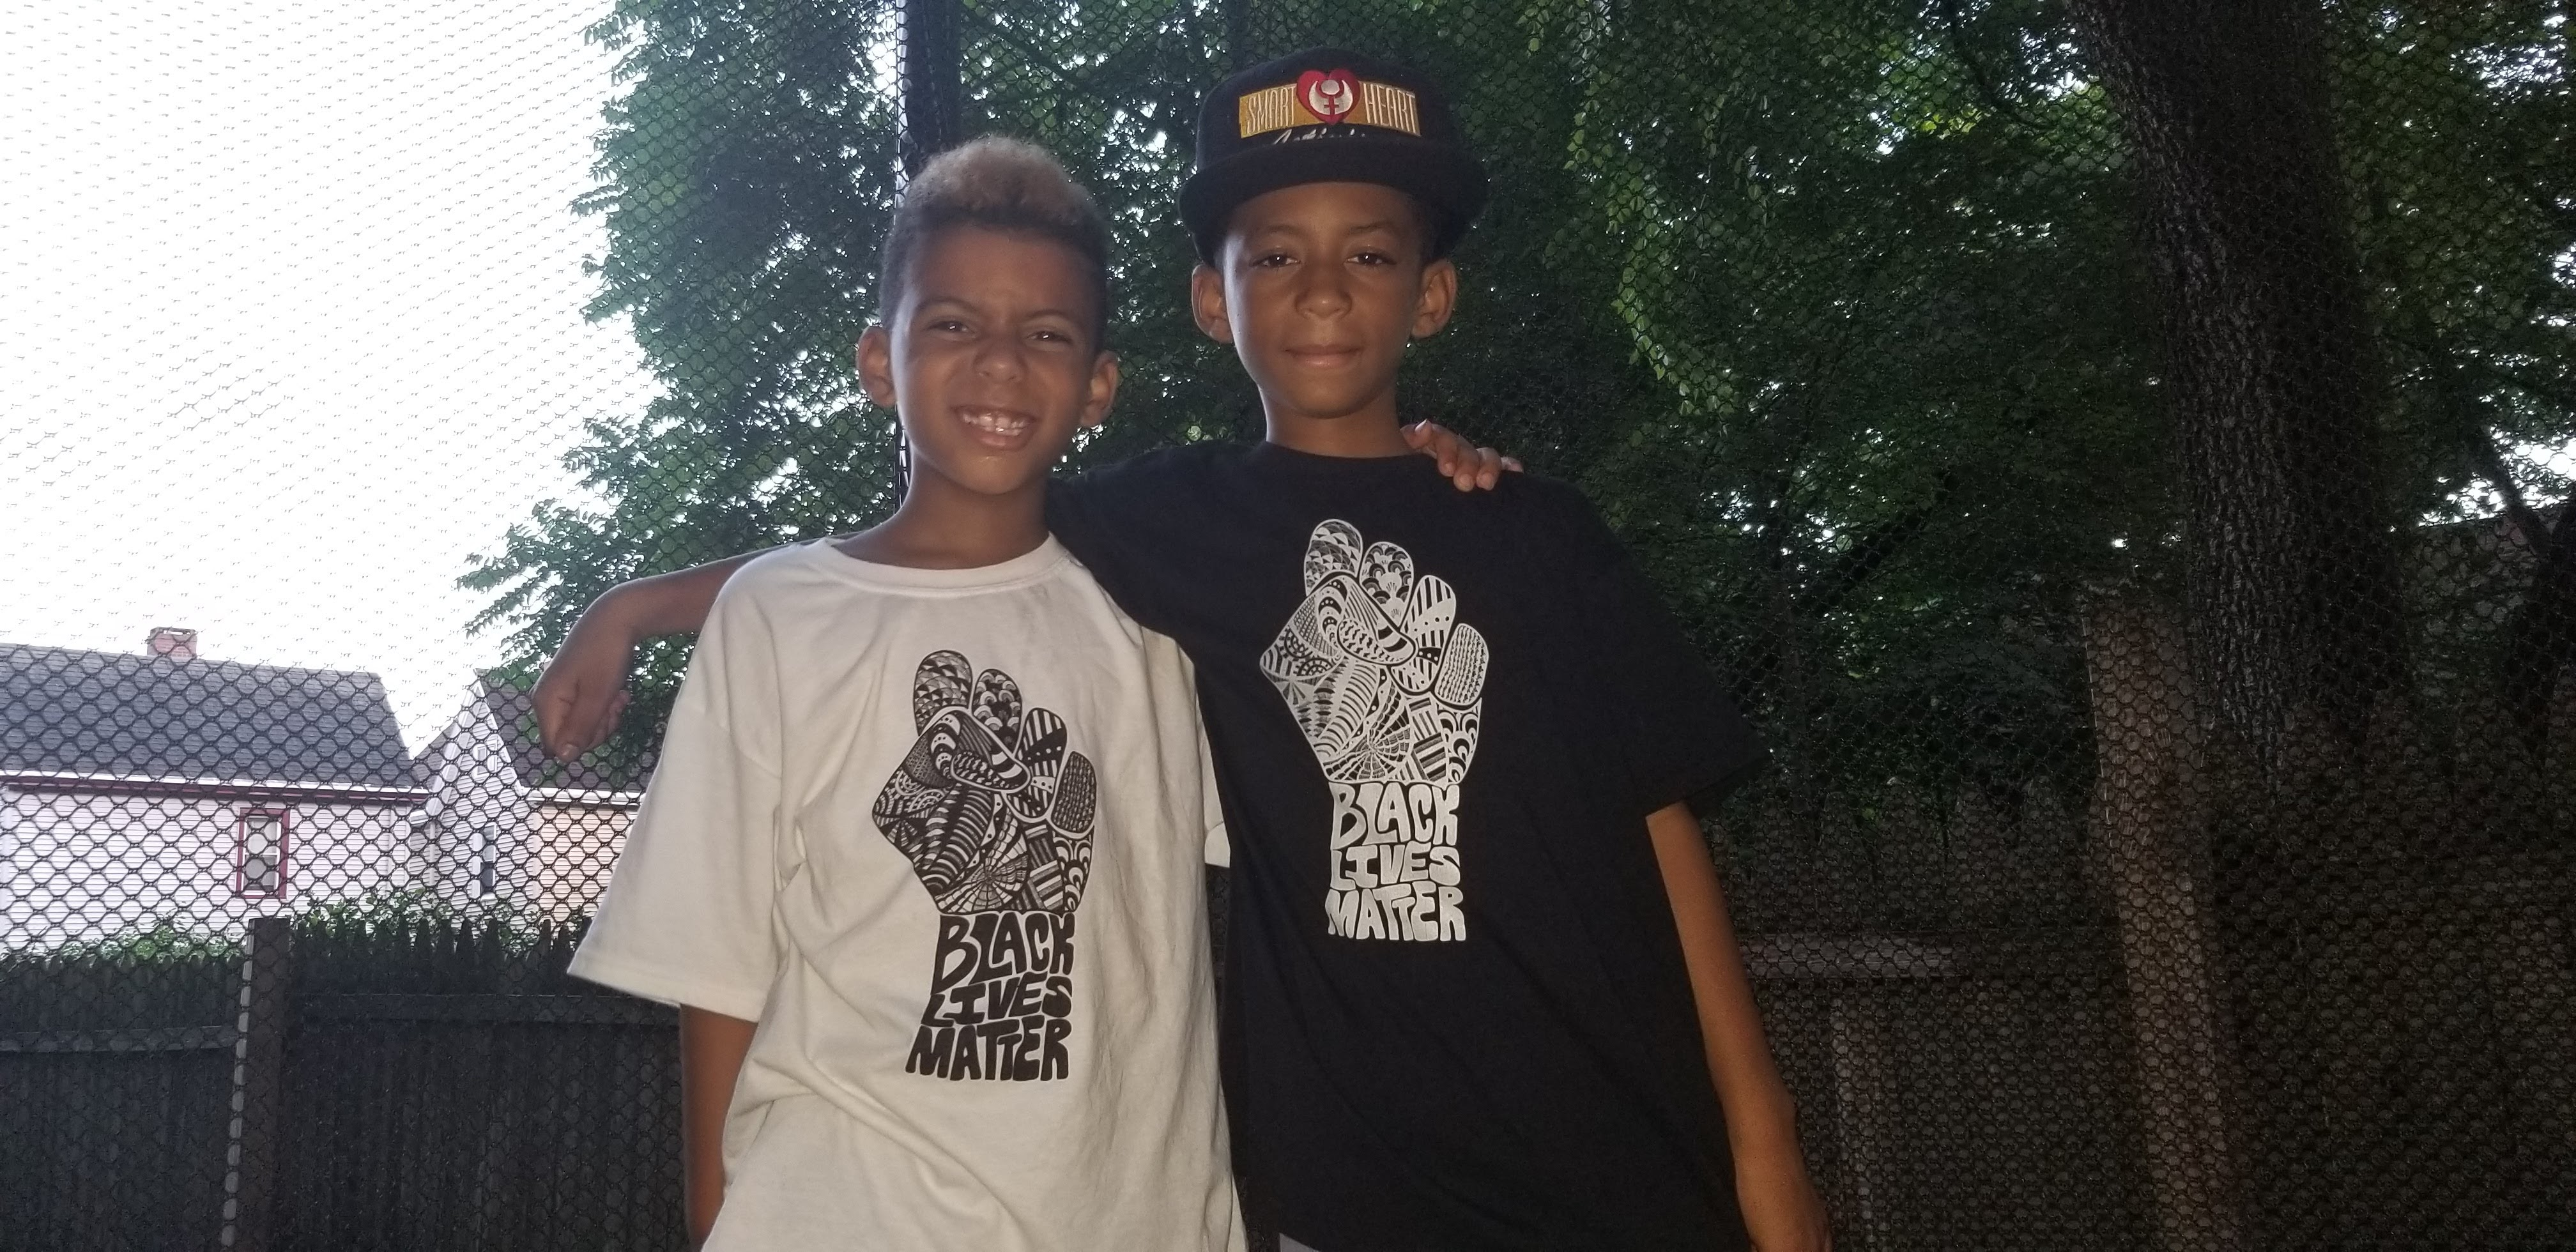 Black Lives Matter Kids Shirts